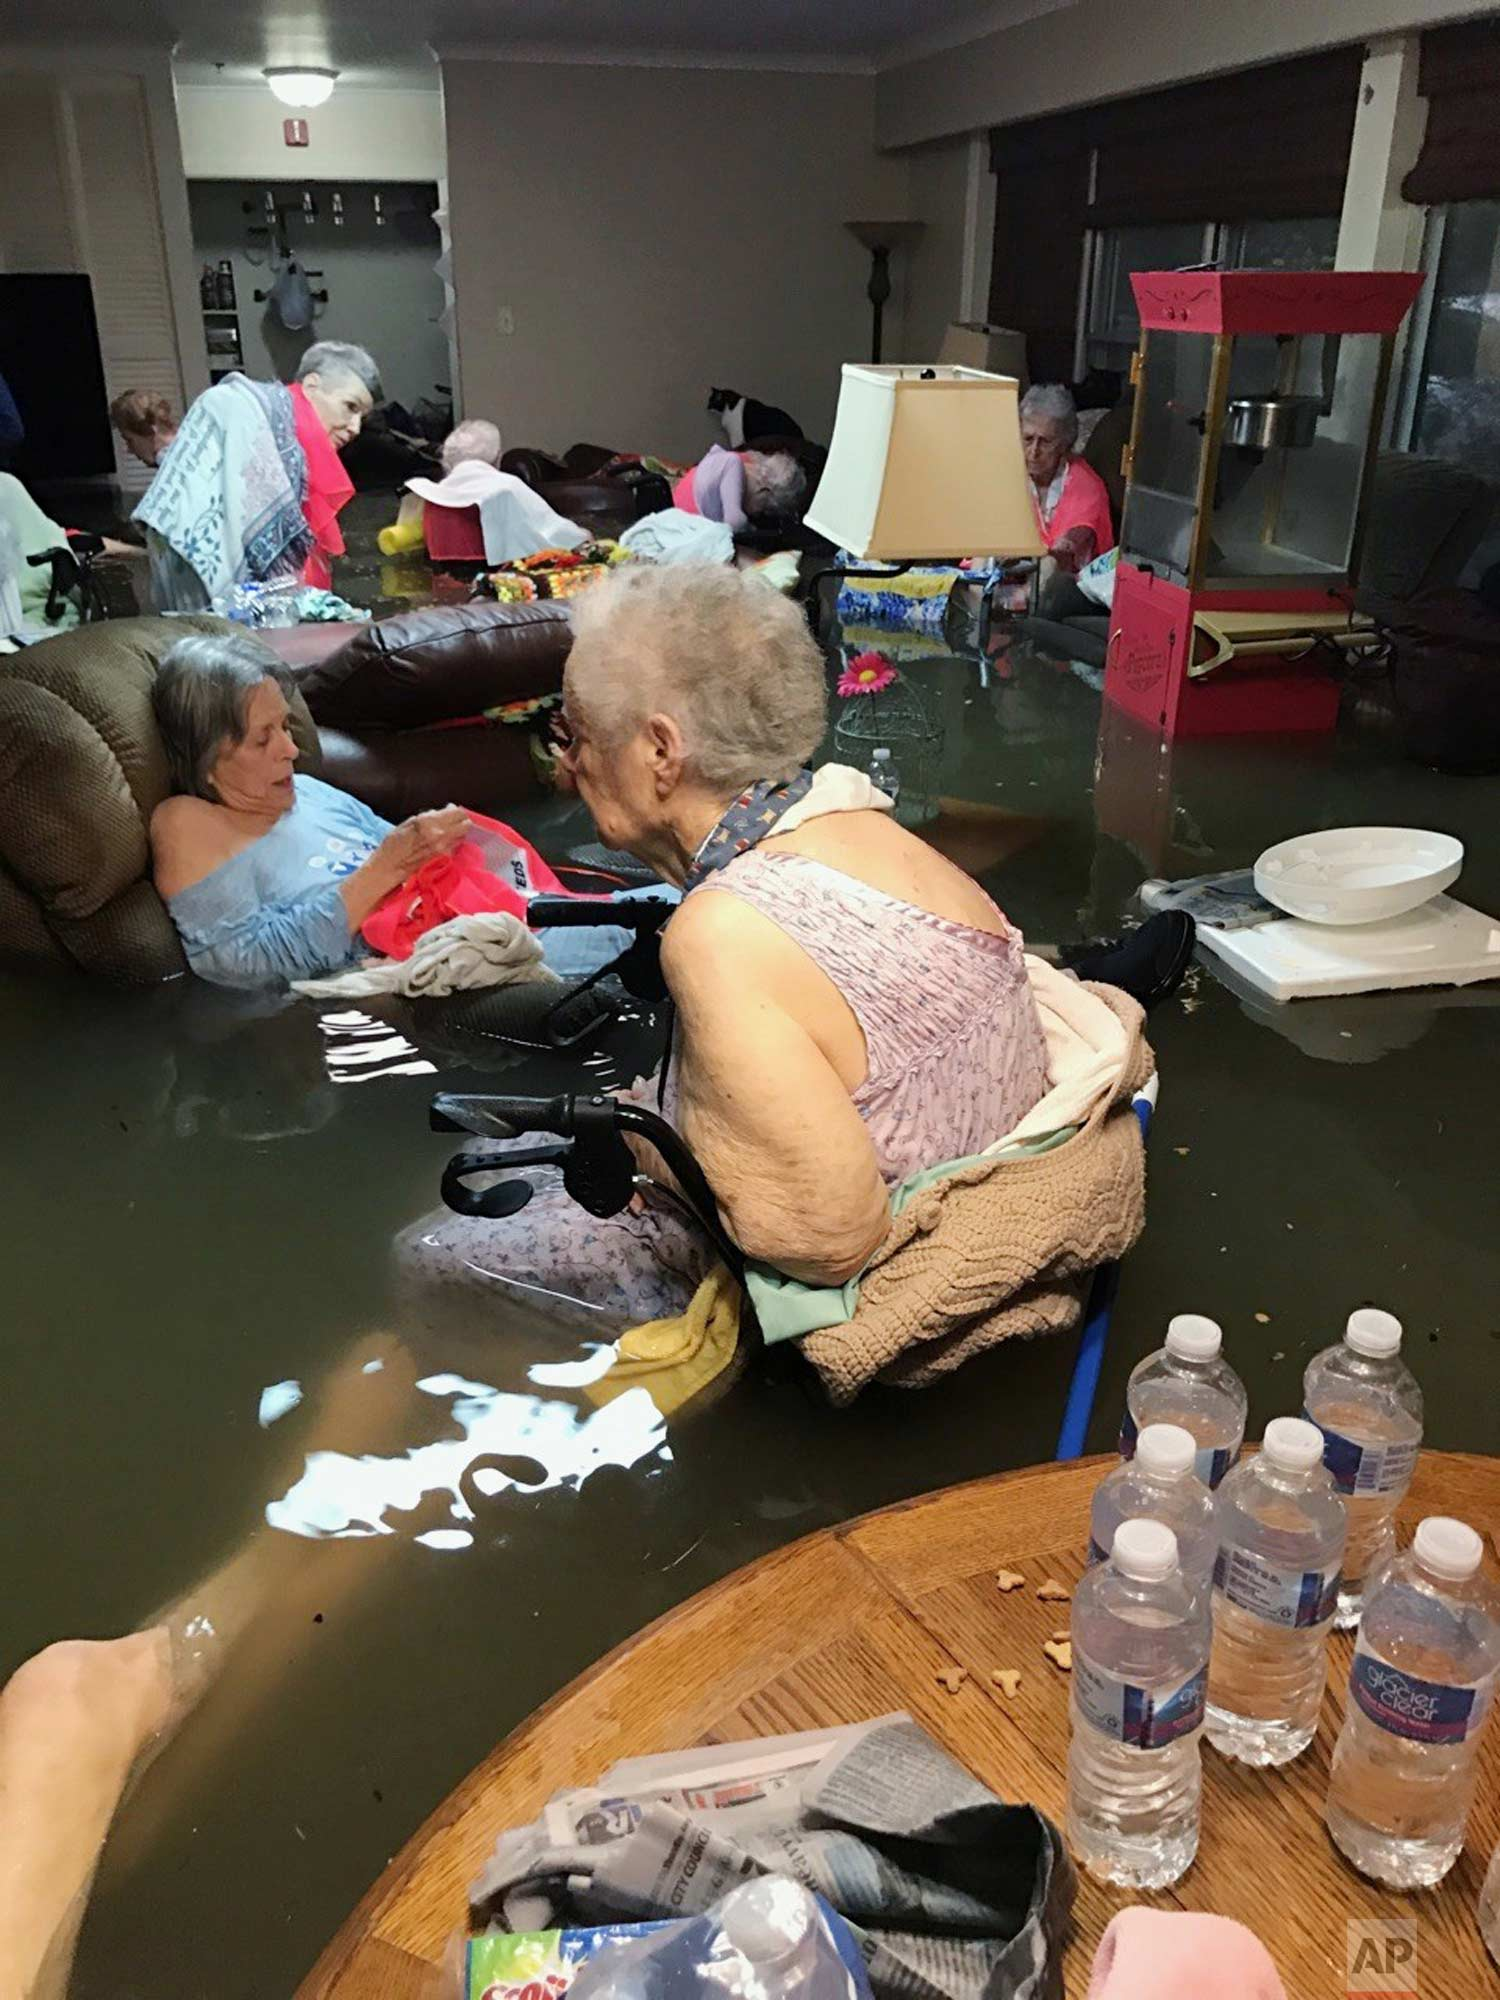 In this photo provided by Trudy Lampson, residents of the La Vita Bella nursing home in Dickinson, Texas, sit in waist-deep flood waters caused by Hurricane Harvey on Sunday, Aug. 27, 2017. Authorities said all the residents were safely evacuated from the facility. (Trudy Lampson via AP)